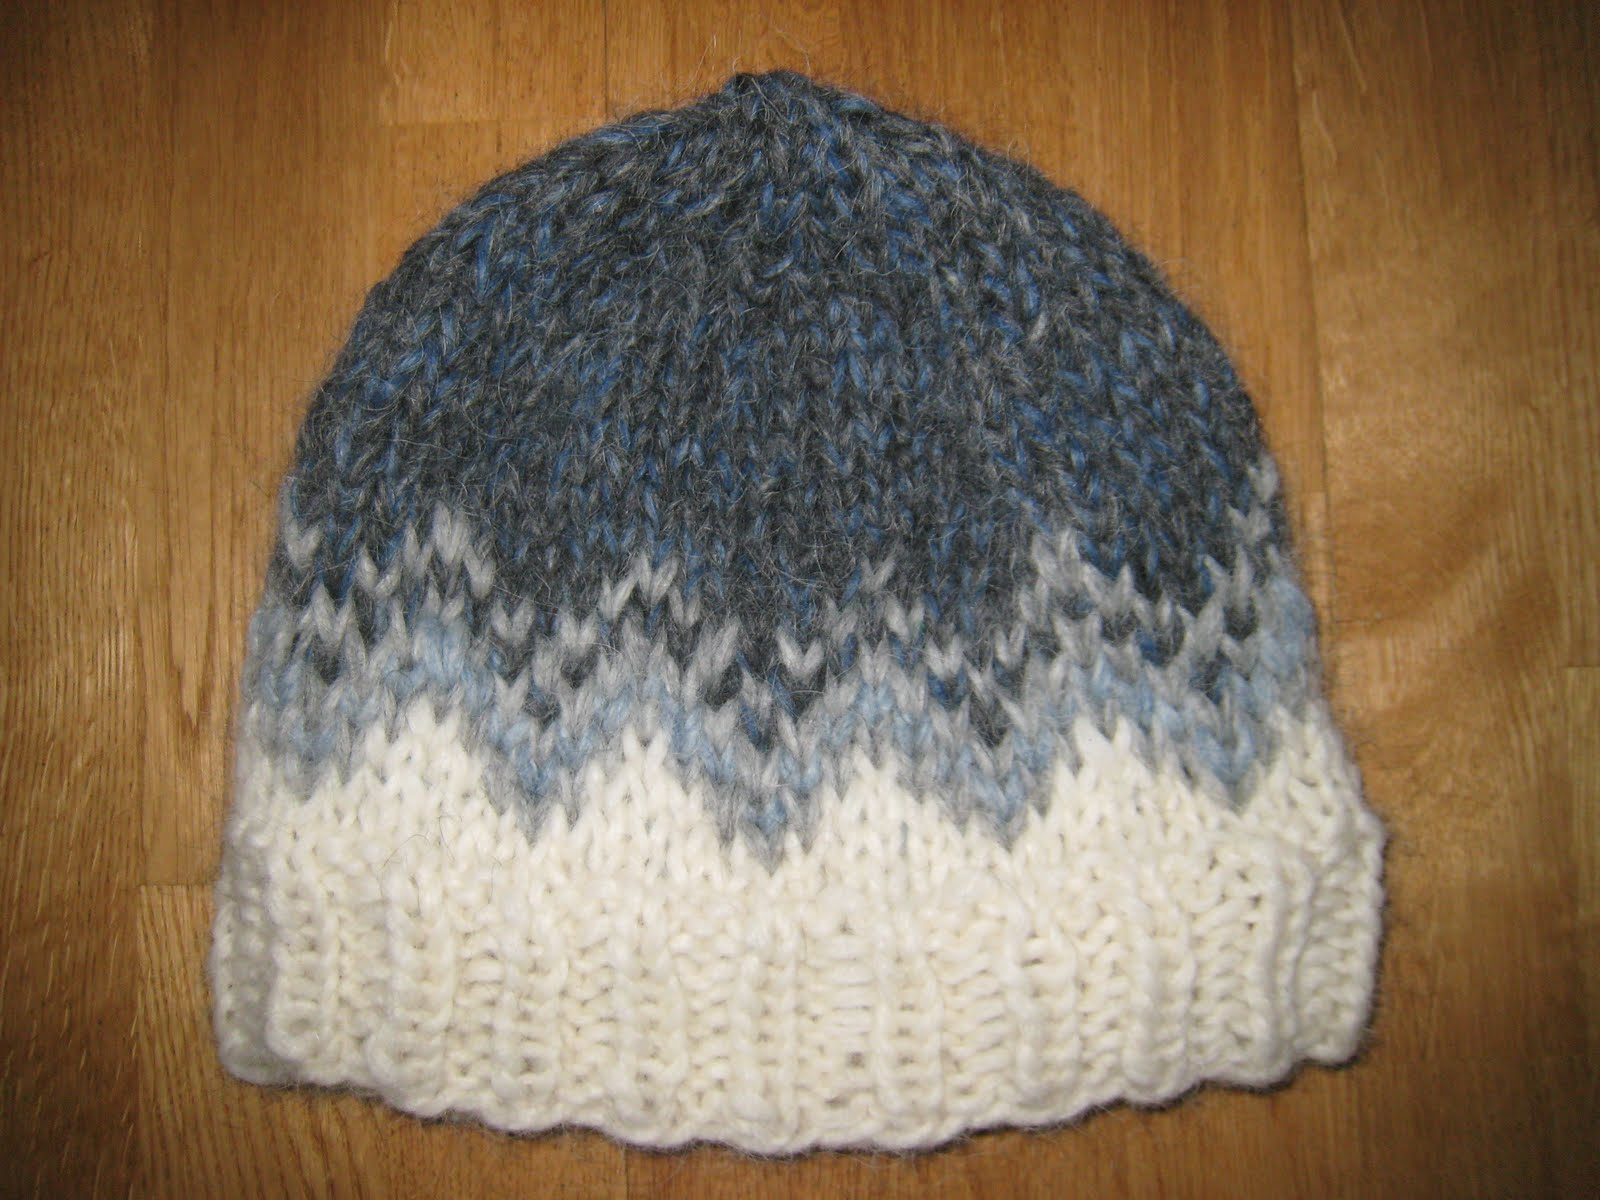 Knitting Pattern Icelandic Wool : Knit Icelandic: Alva was born 20th of December and I knitted a Icelandic hat